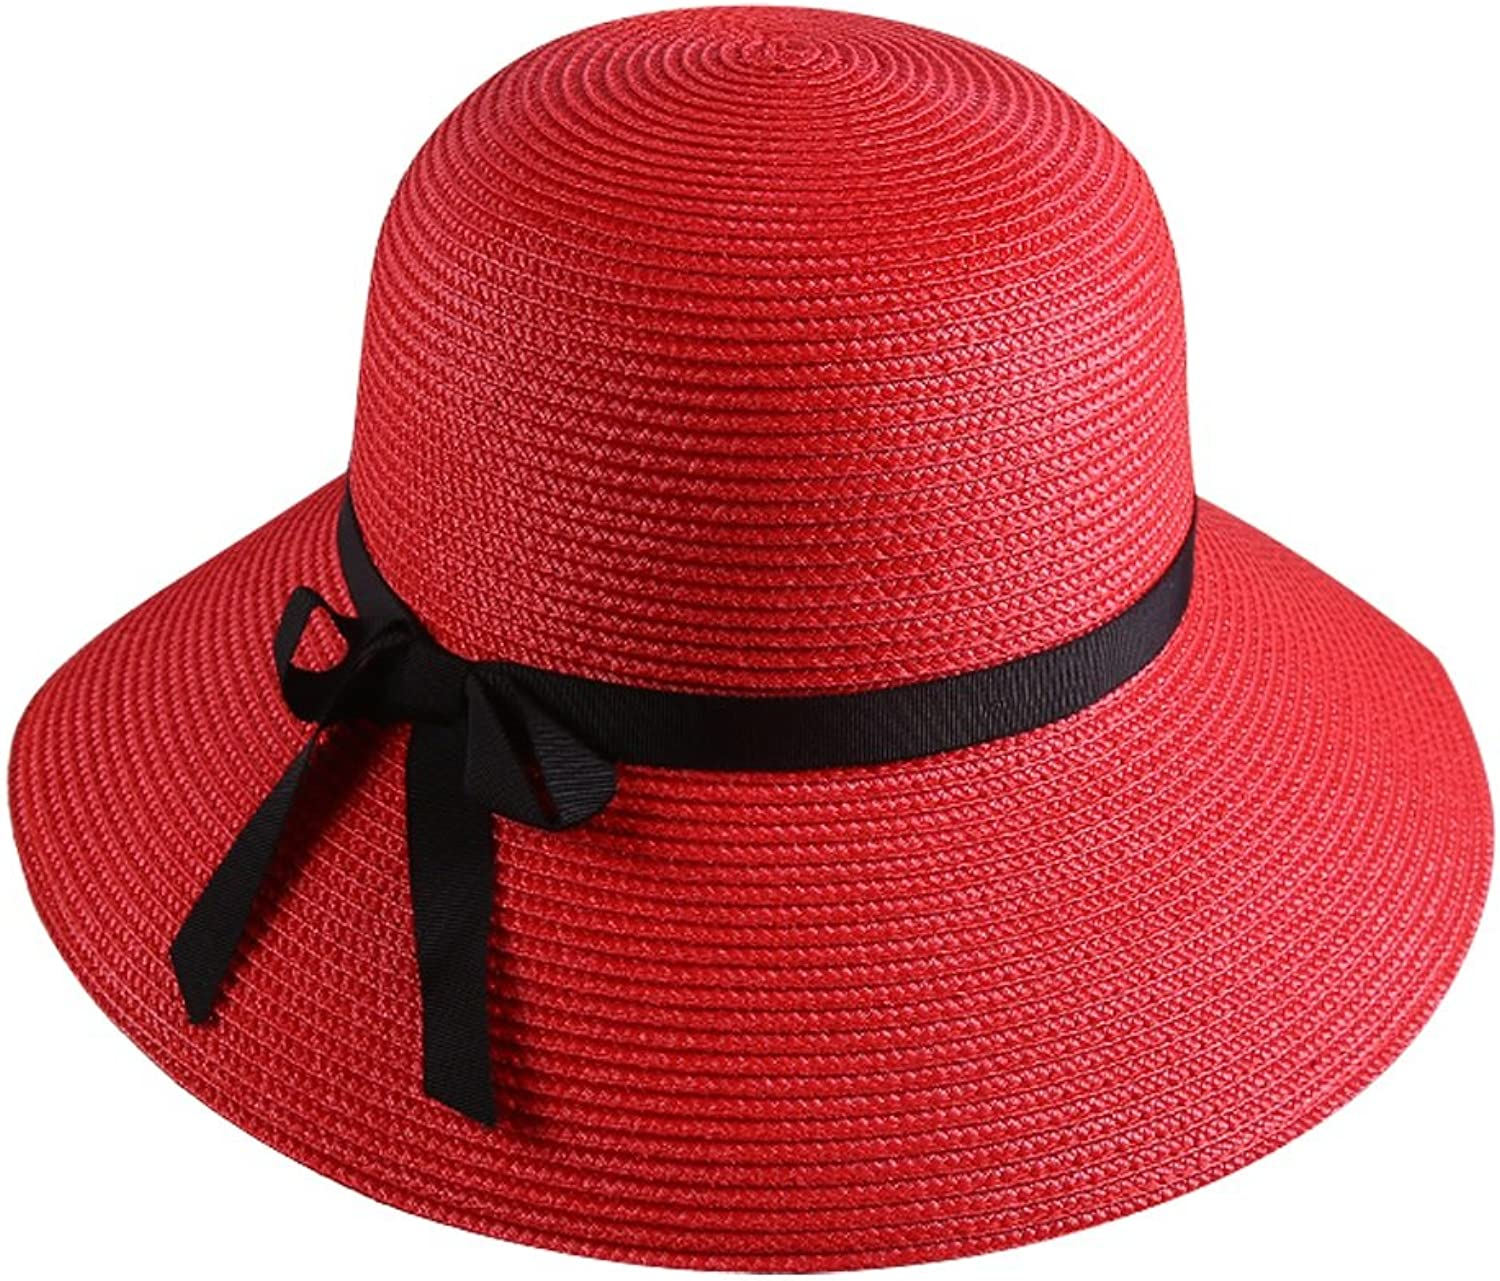 Hat Female Spring and Summer Classic Seaside Sun Hat Collapsible Hat Visor Hat (color   RED)